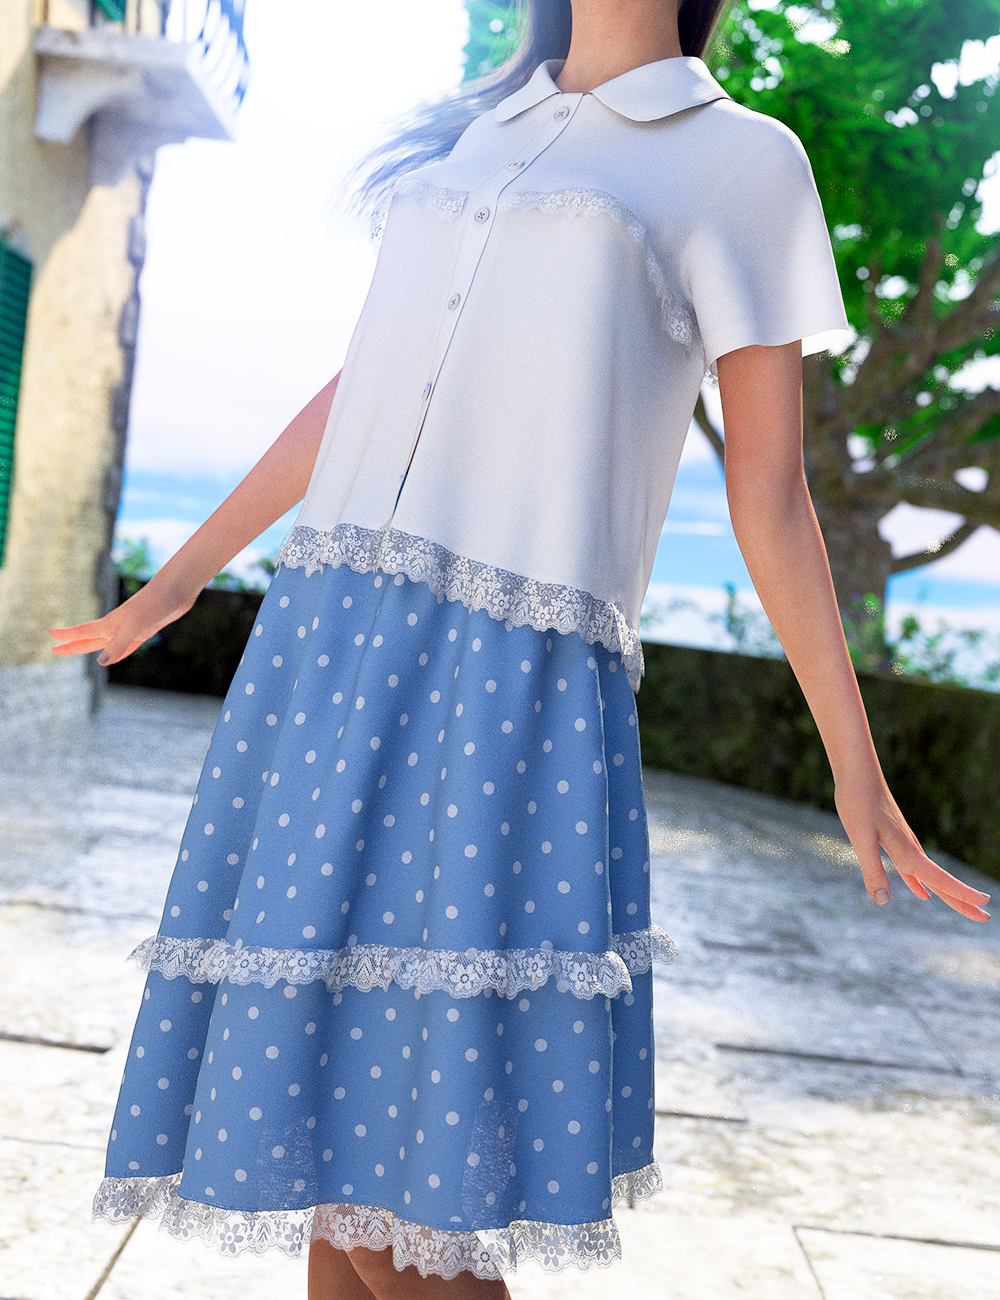 dForce Frilled Blouse and Skirt for Genesis 8 Female by: junuehara, 3D Models by Daz 3D